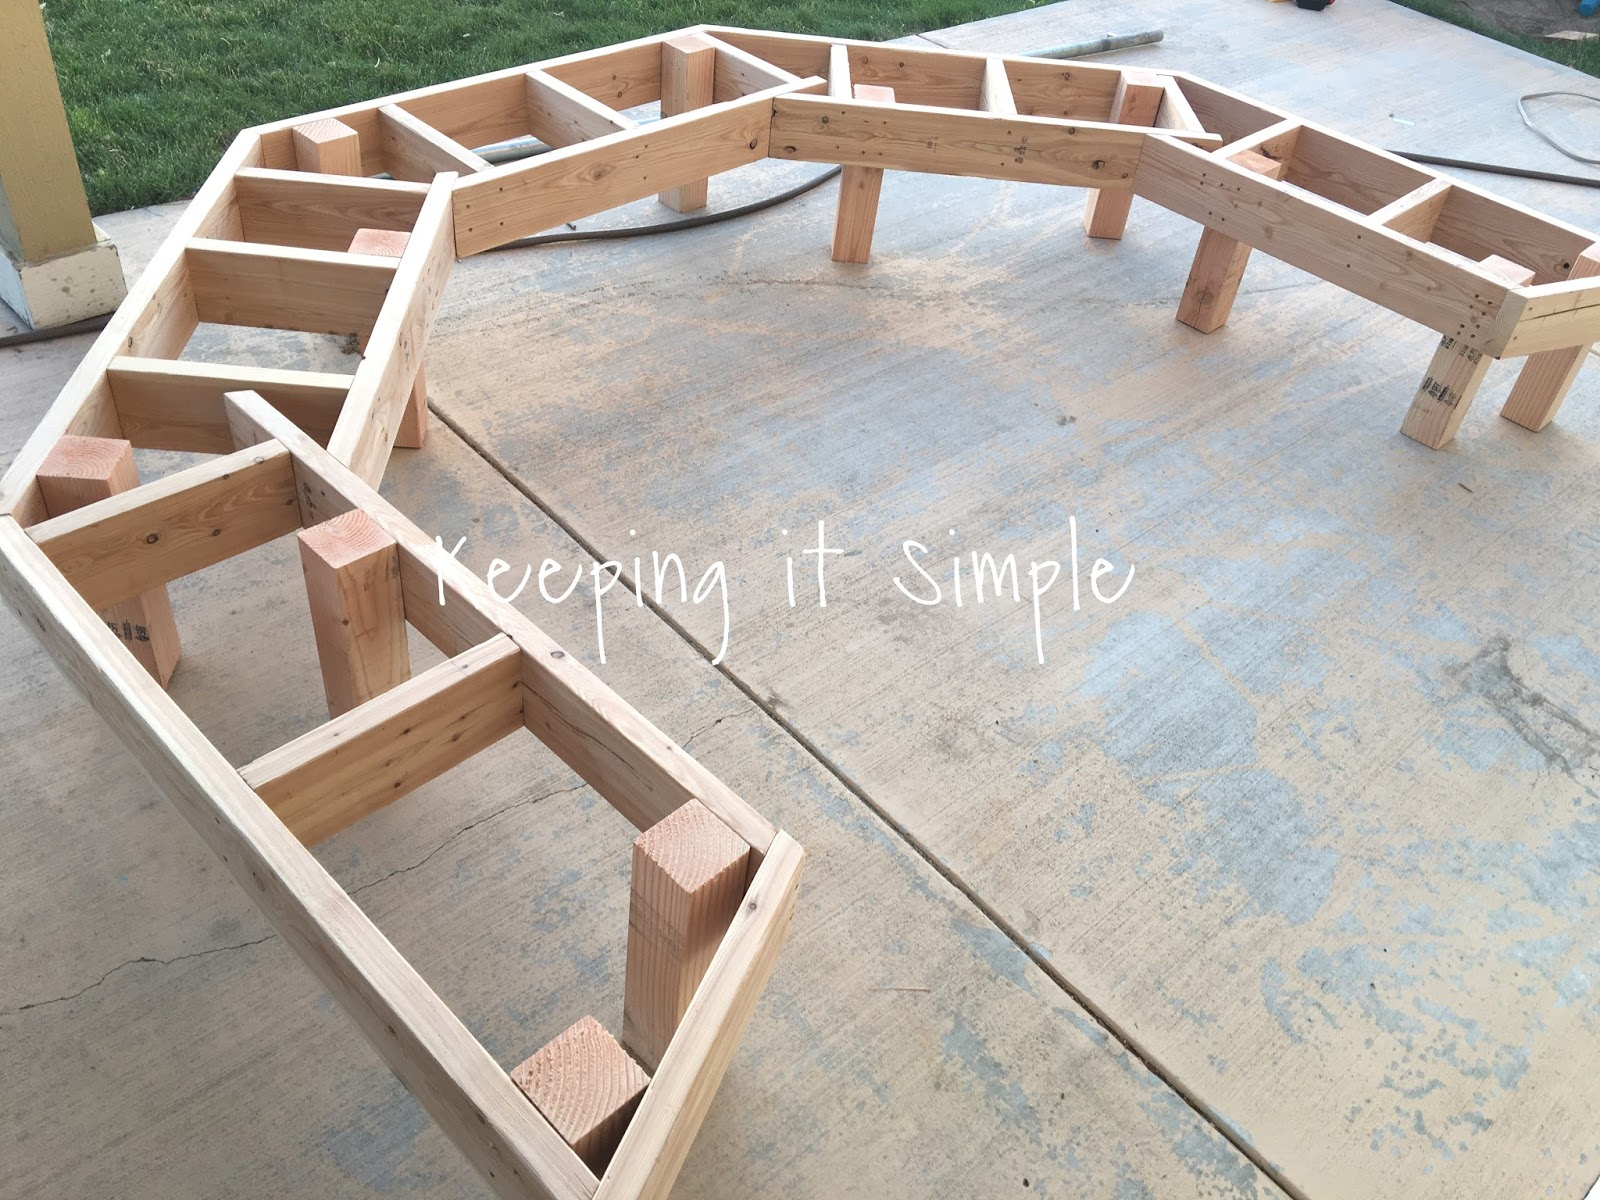 Admirable Diy Fire Pit Bench With Step By Step Insructions Keeping Gmtry Best Dining Table And Chair Ideas Images Gmtryco